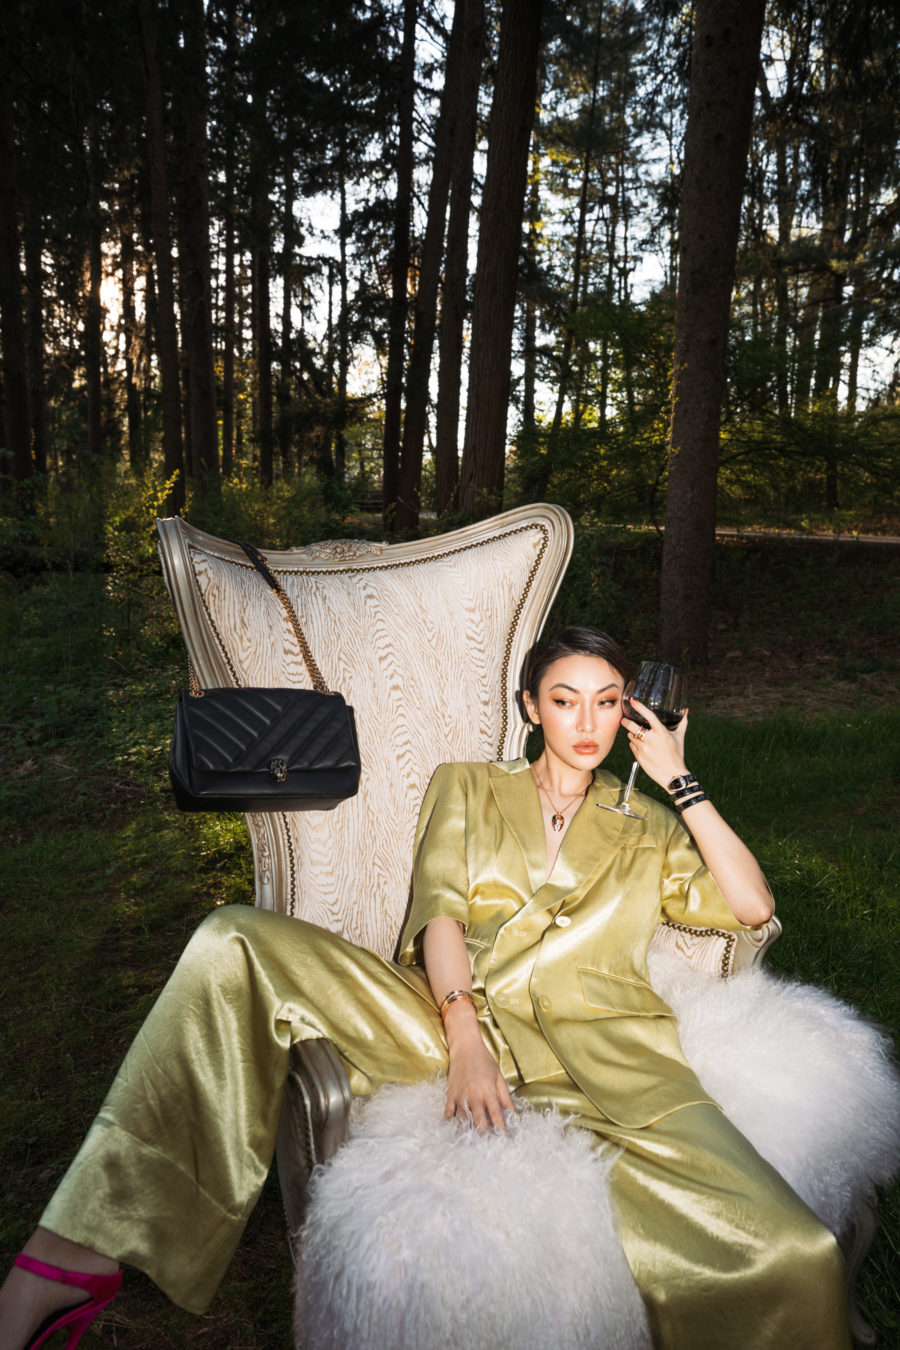 how to unwind after a long day - glass of wine outside // Jessica Wang - Notjessfashion.com